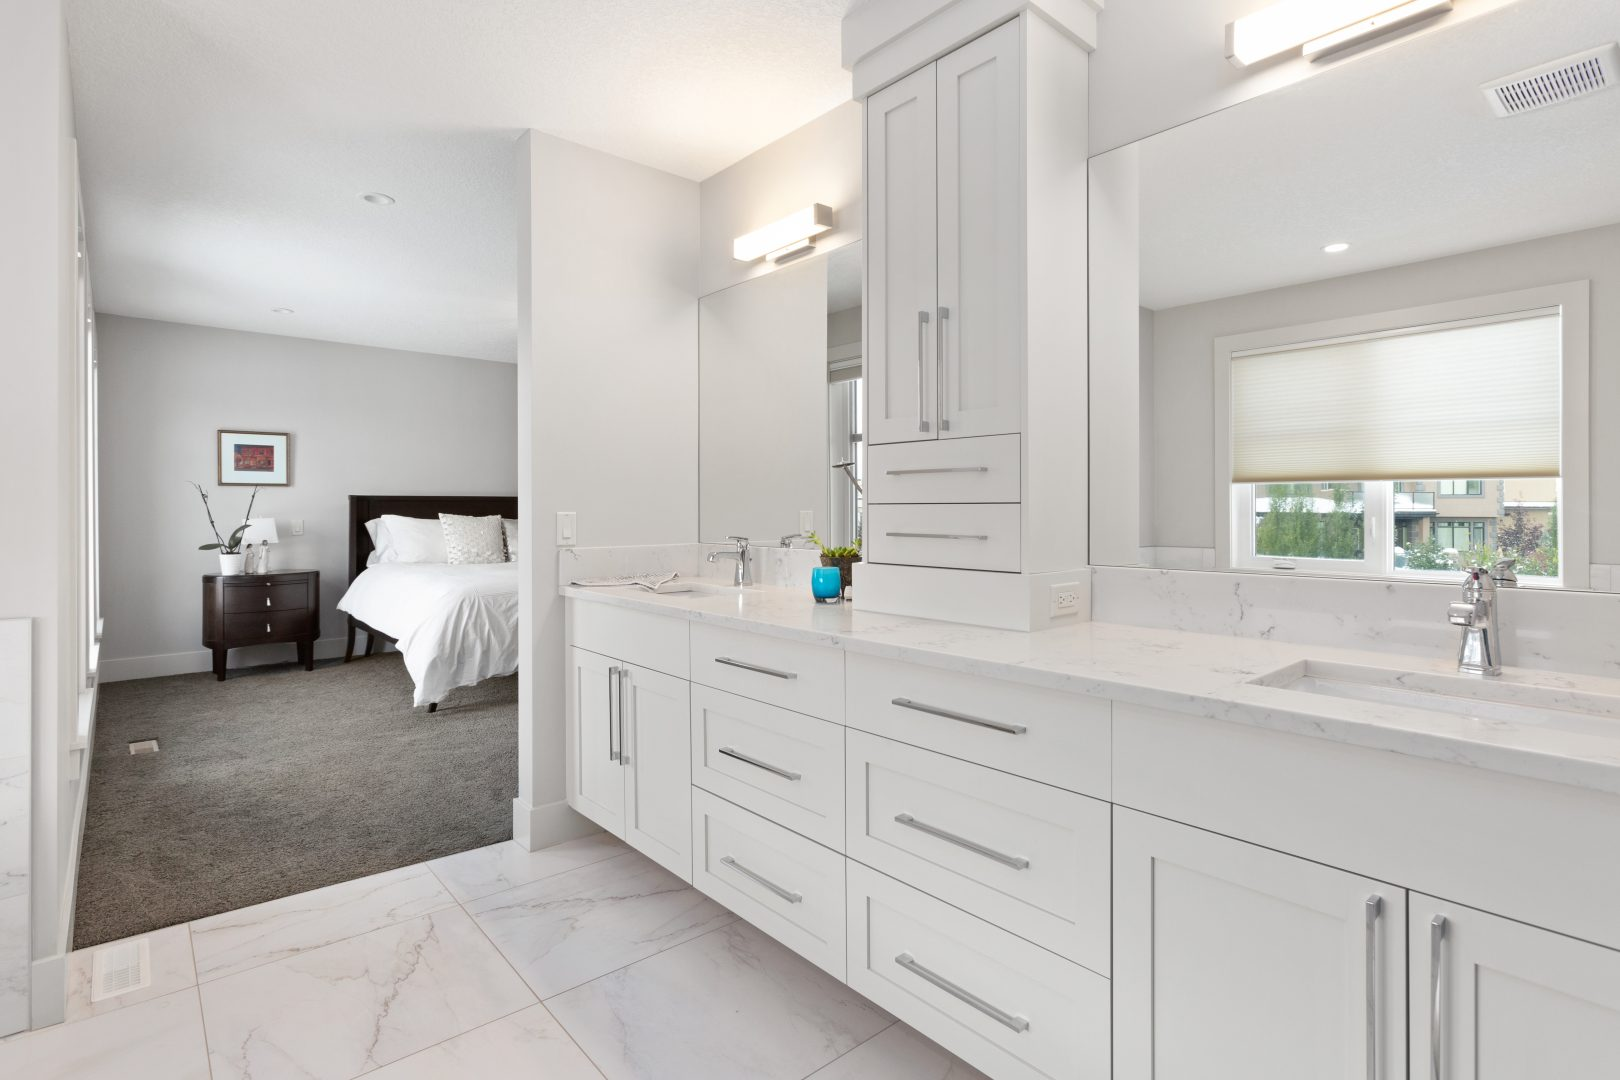 Real Estate Photography. A master's bedroom ensuite bathroom with double sink for he and him photographed by Ryan Haggel from Calgary Real Estate Photography for a real estate agent based in Calgary Alberta.